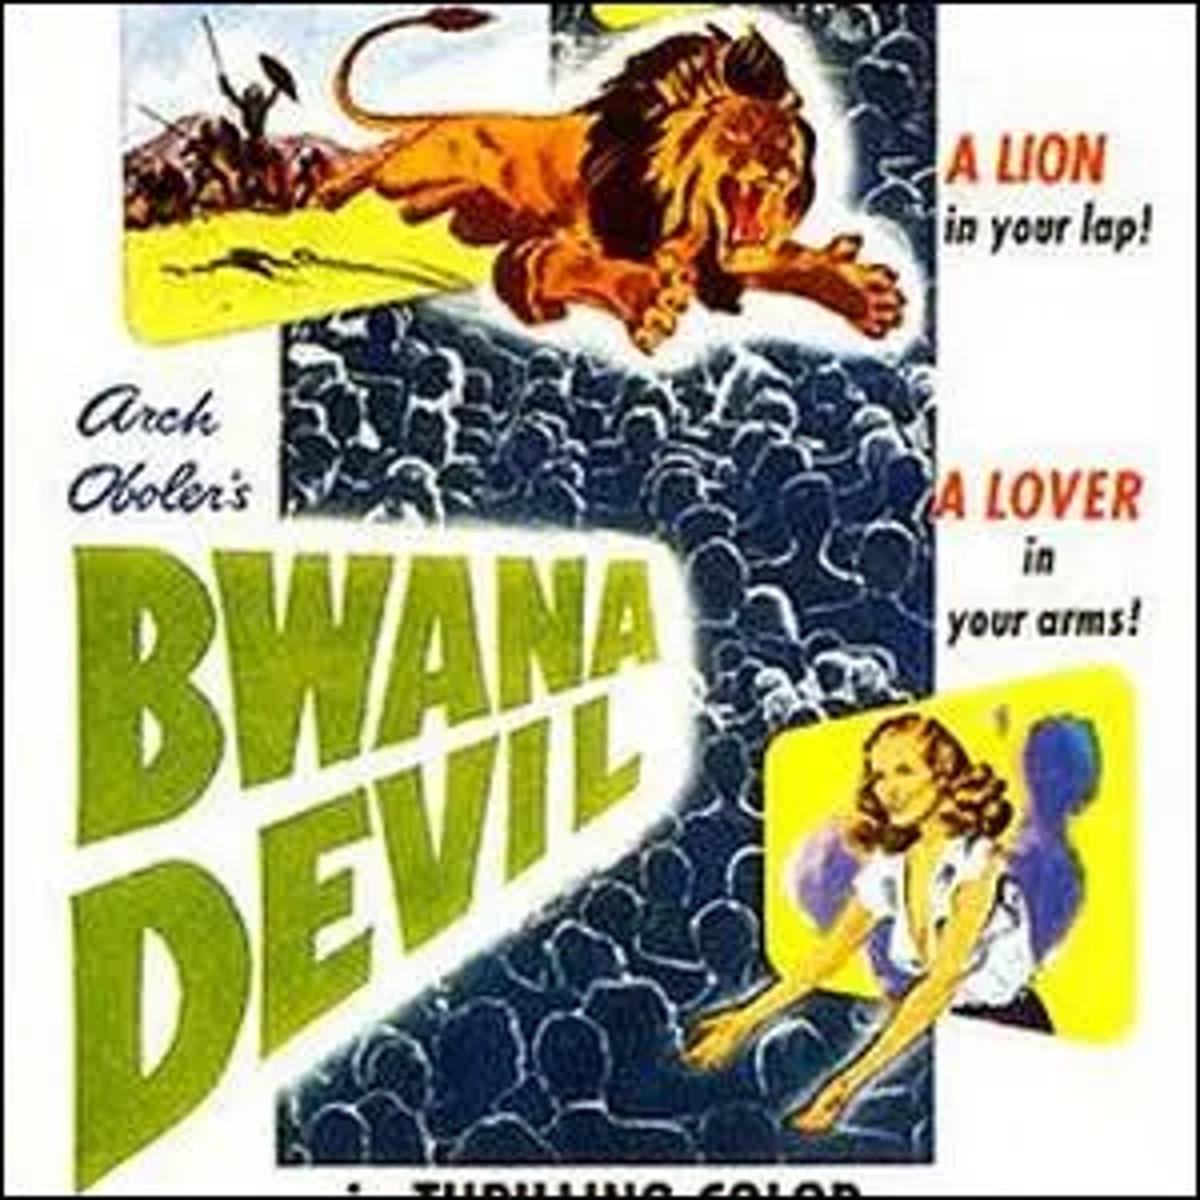 The movie poster for Bwana Devil.